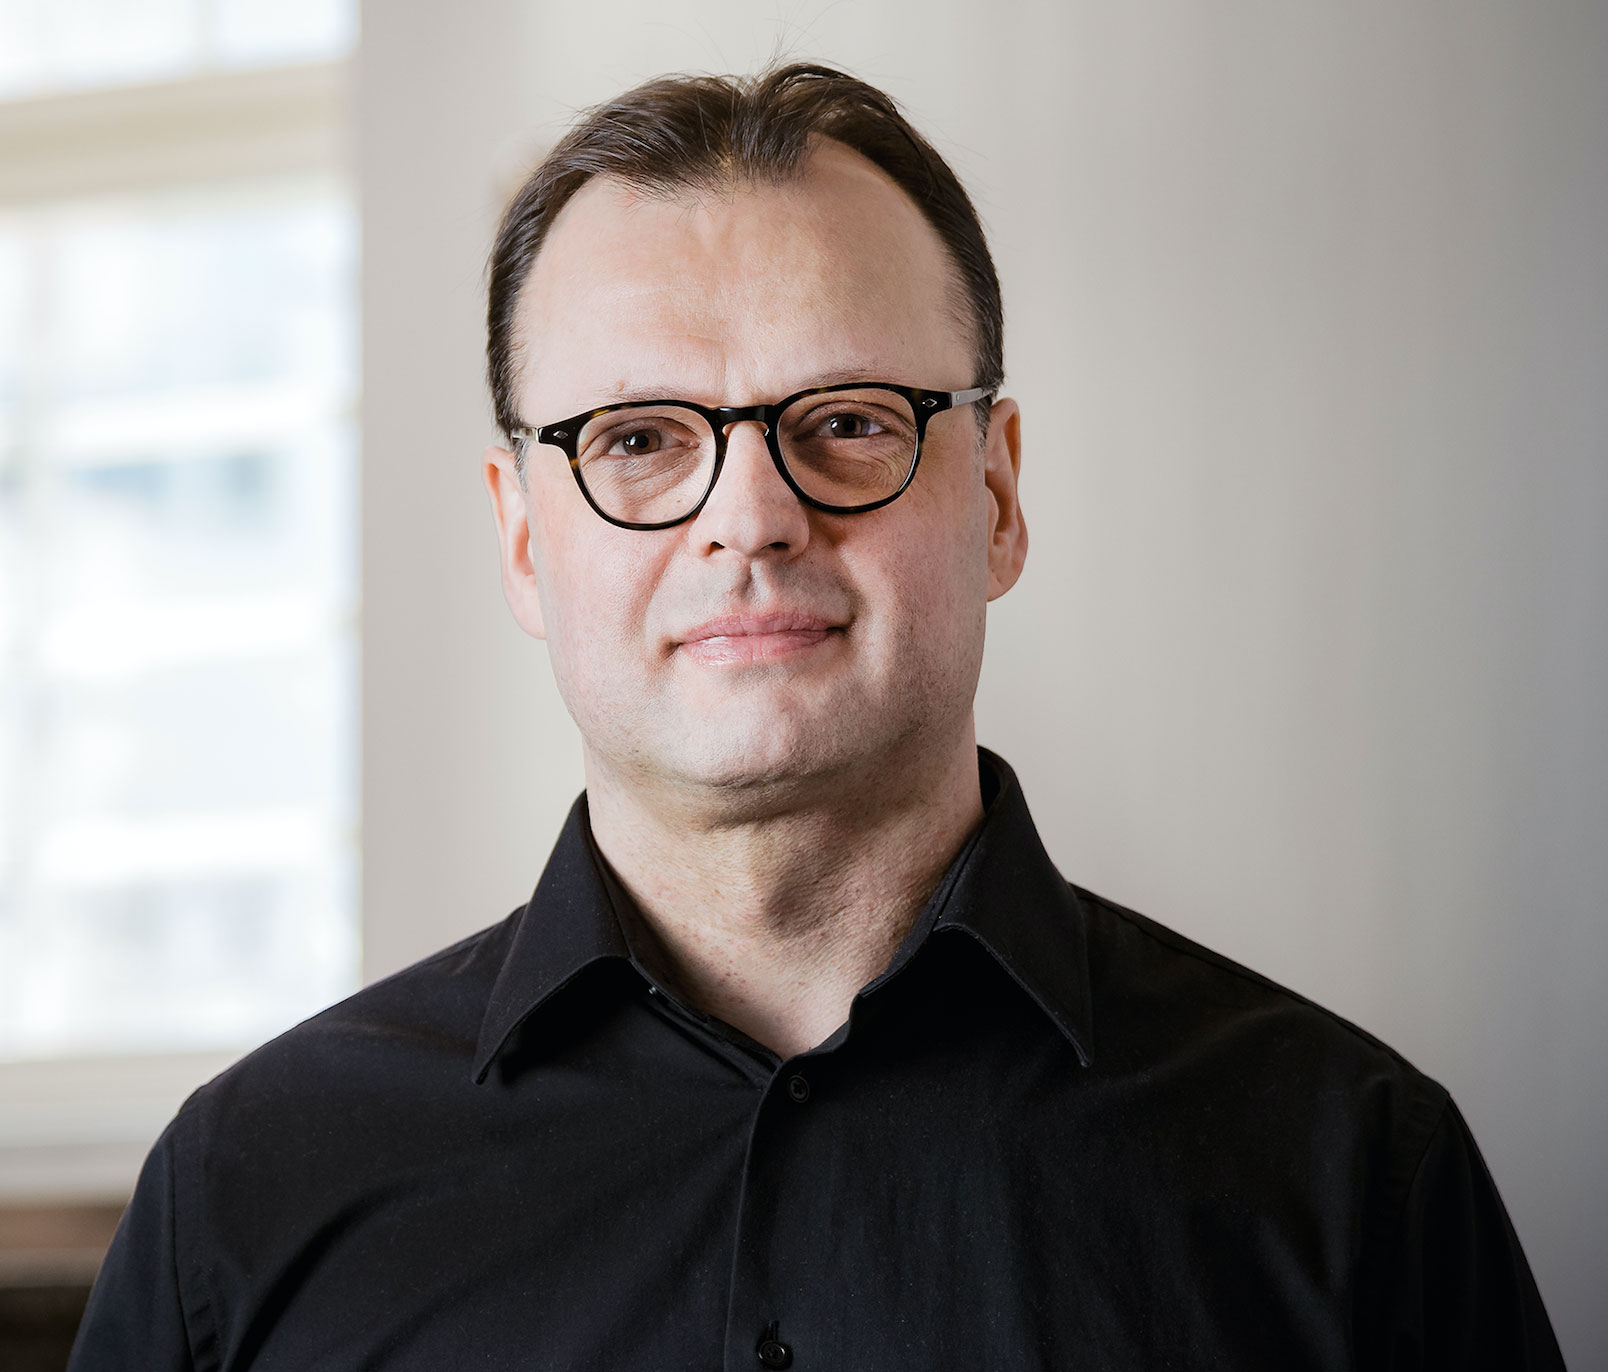 Janne Knuutinen, CEO of Zero Reception